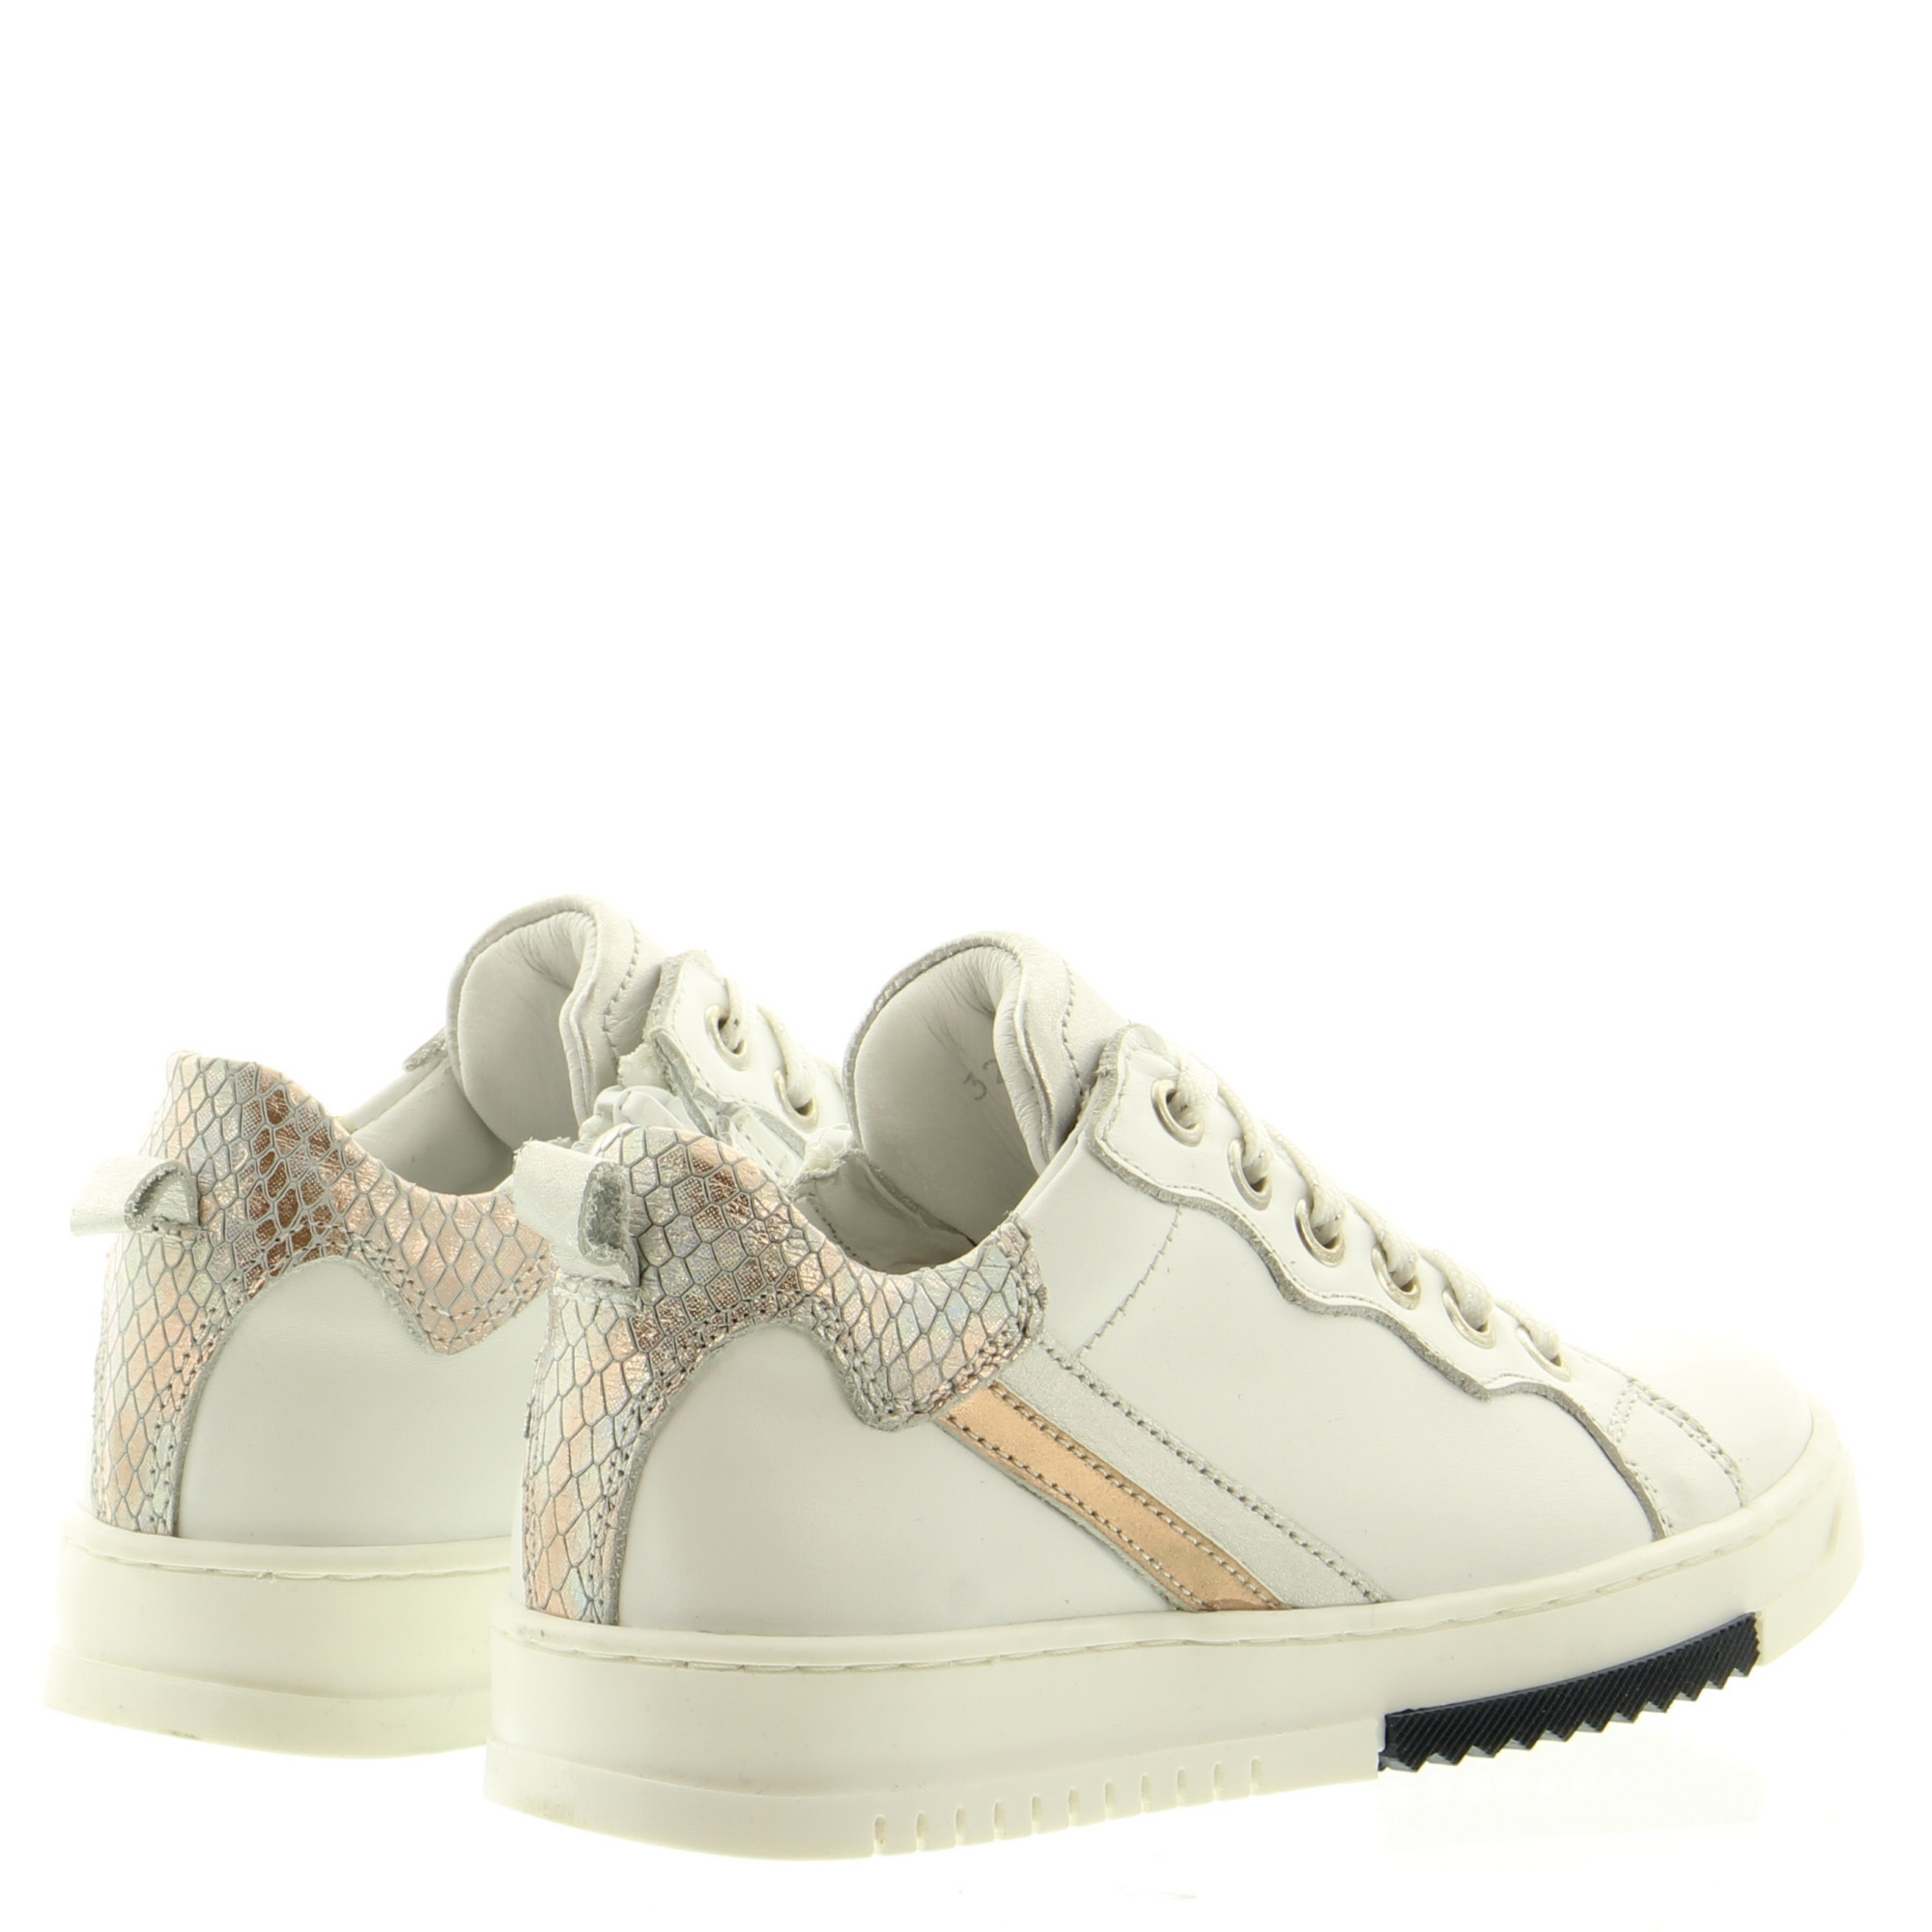 Twins Trackstyle 321170 600 White Metal